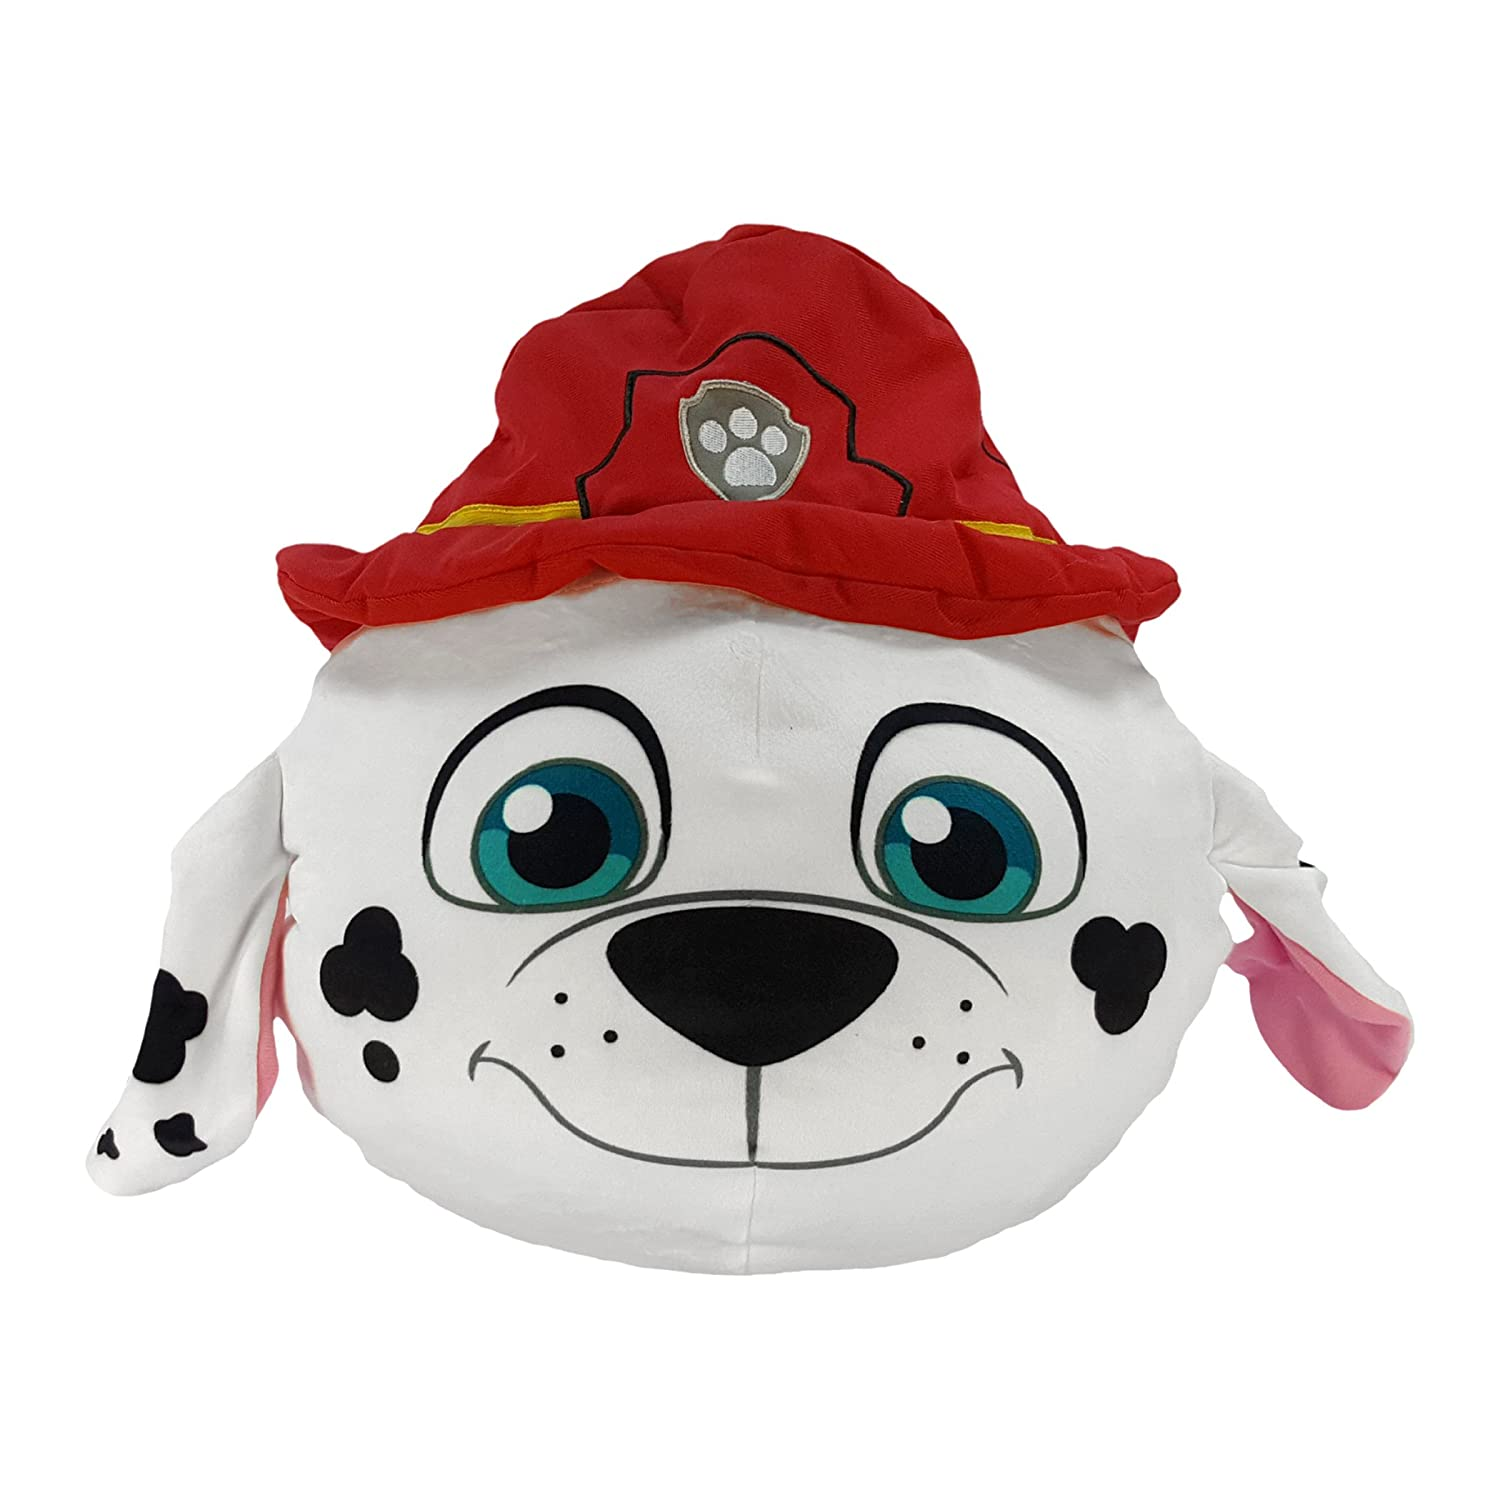 "Nickelodeon's Paw Patrol, ""Marshall"" 3D Ultra Stretch Cloud Pillow, 11"", Multi Color"